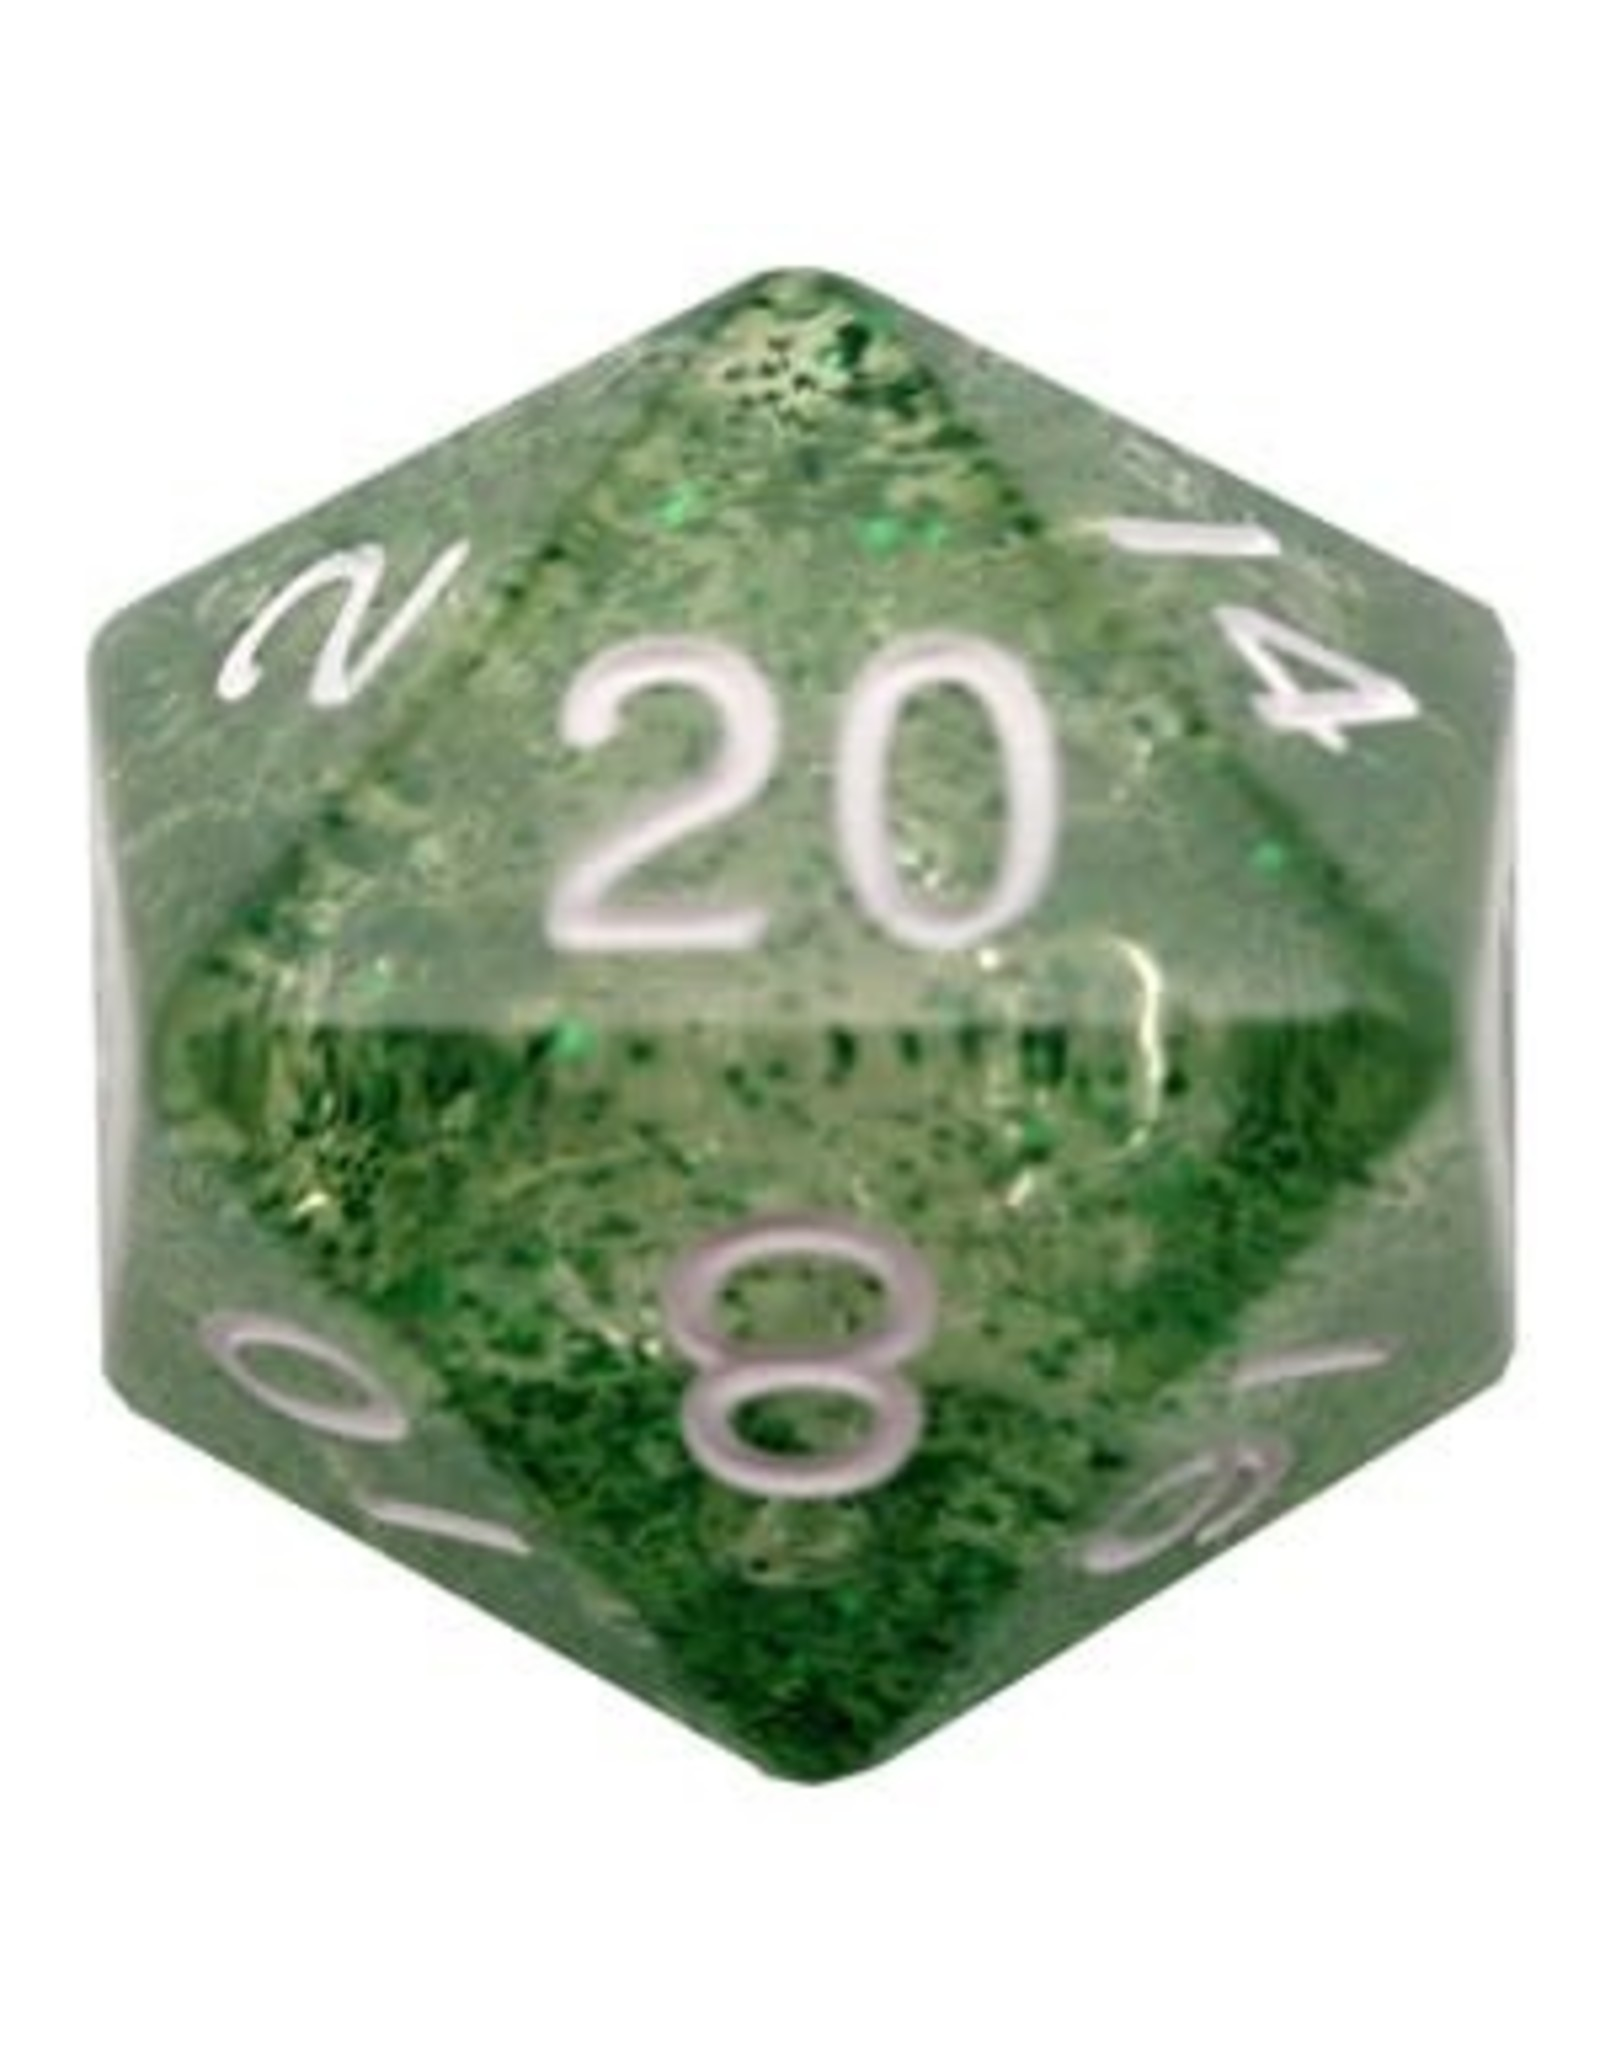 Metallic Dice Games Ethereal Green 35mm Mega Acrylic d20